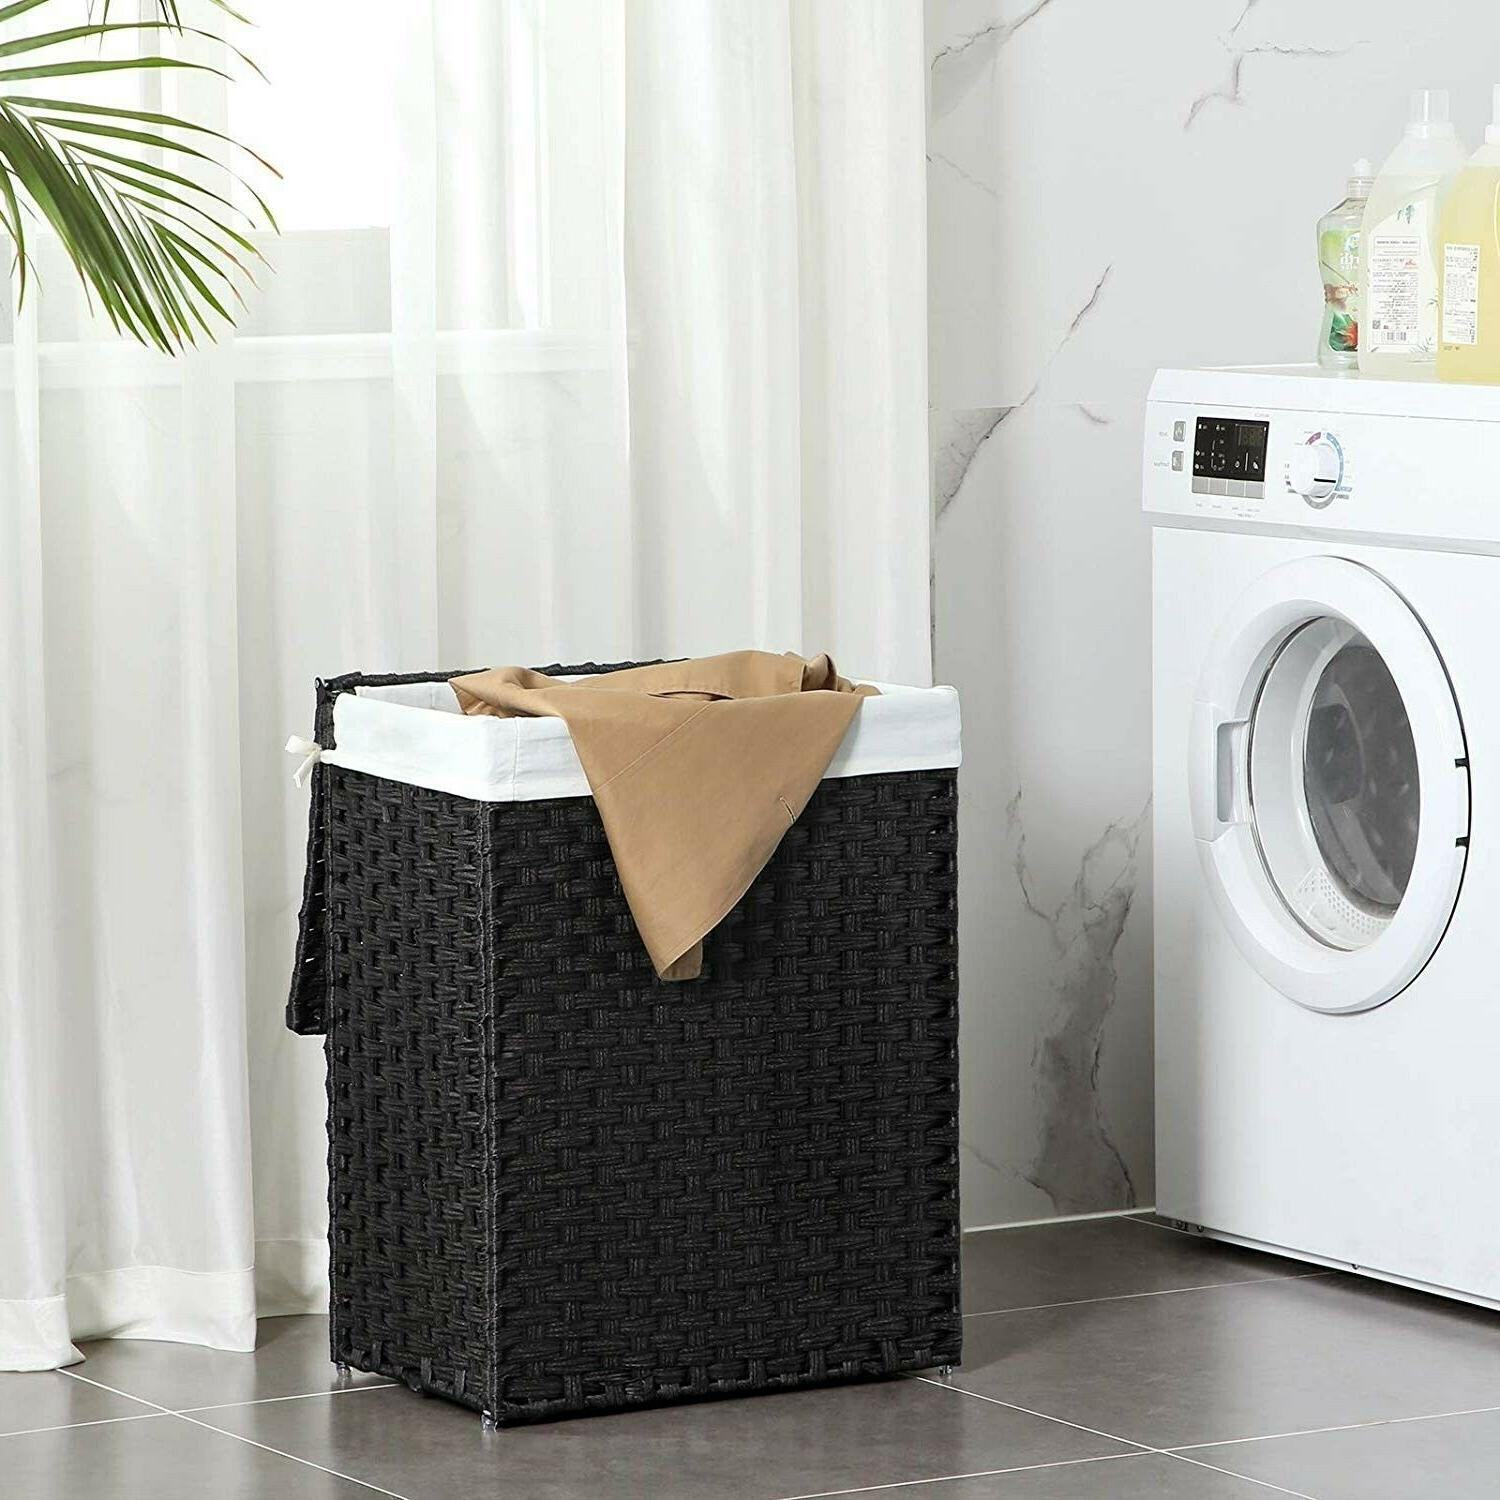 Laundry Basket Hamper Clothes Rattan With